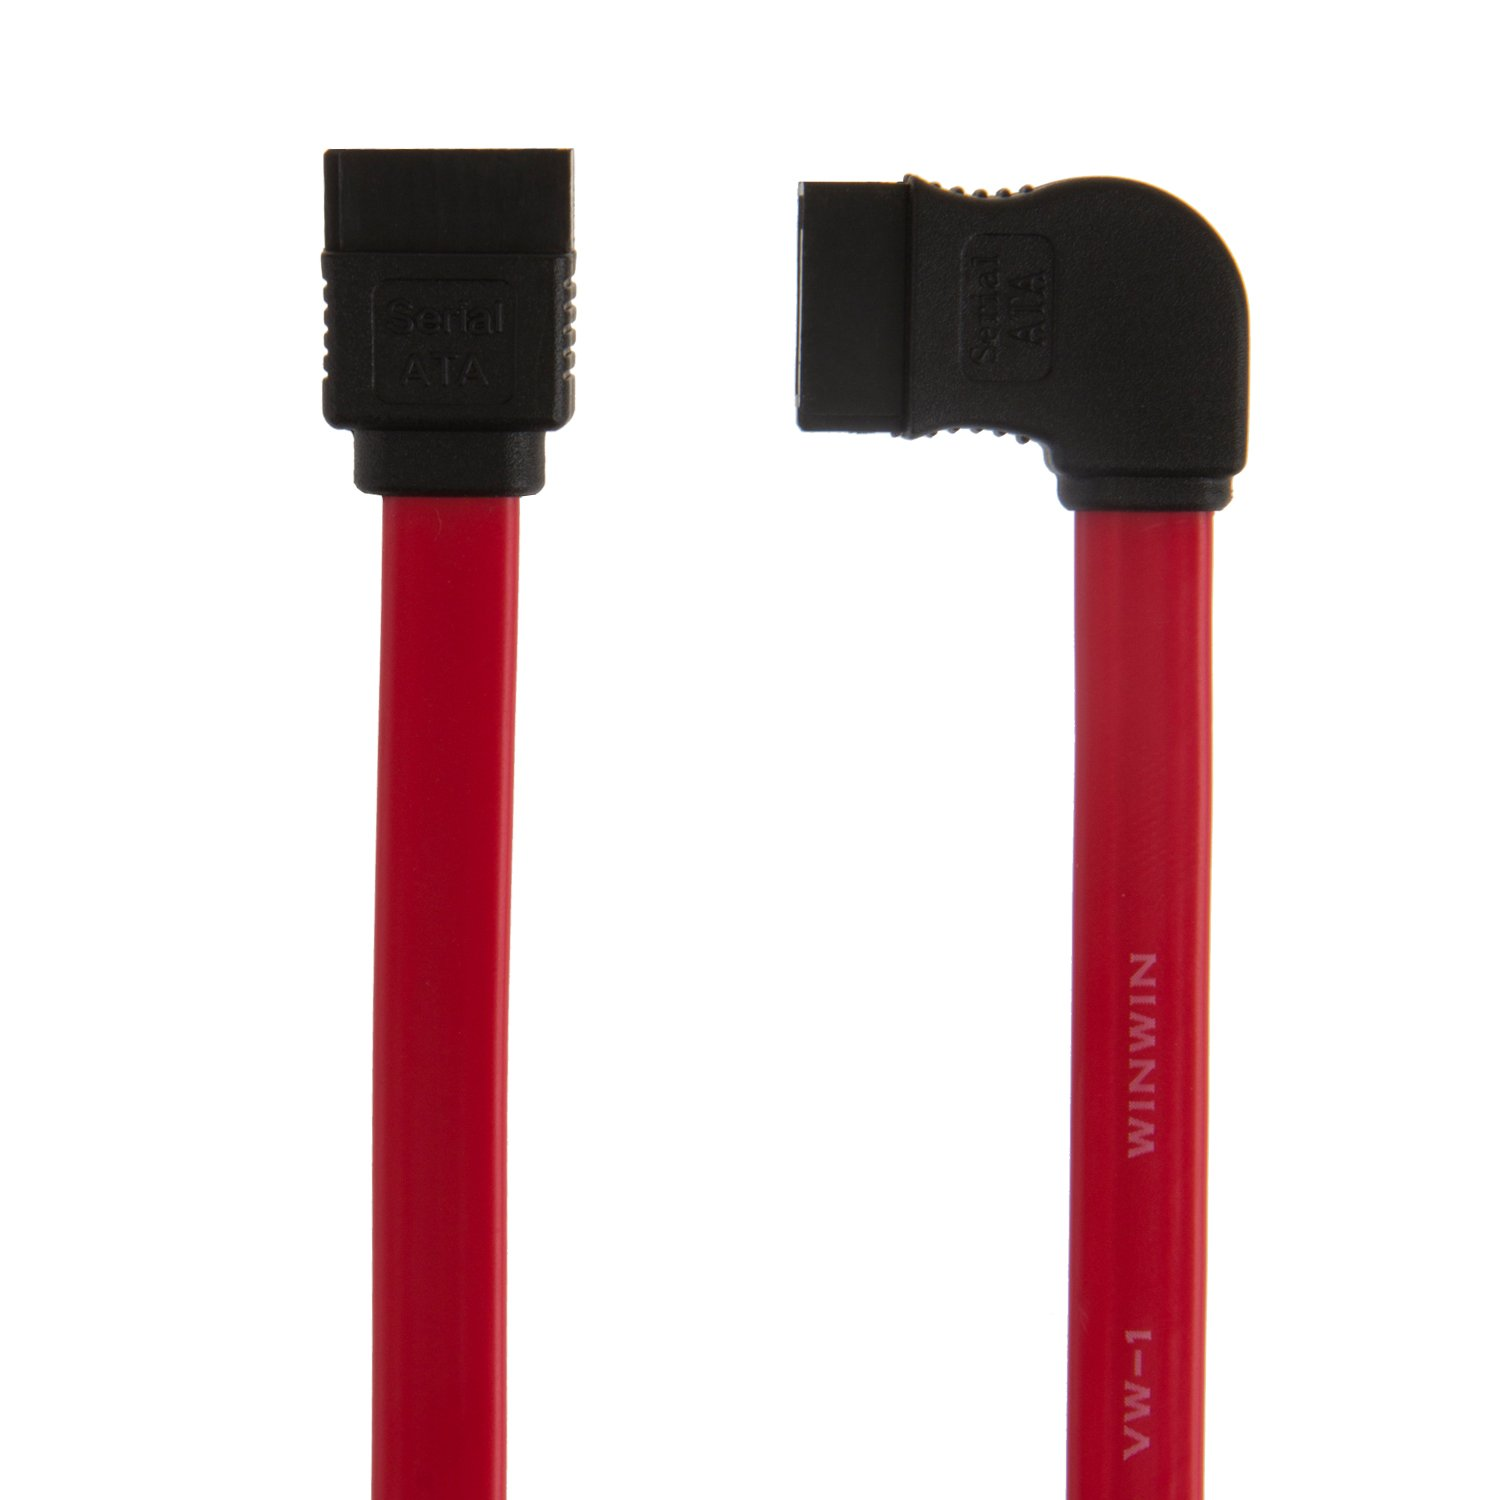 CableCreation 2-Pack Red 8-inch SATA III 6.0 Gbps 7pin Female to Down Angle Female Data Cable with Locking Latch SATA III Cable